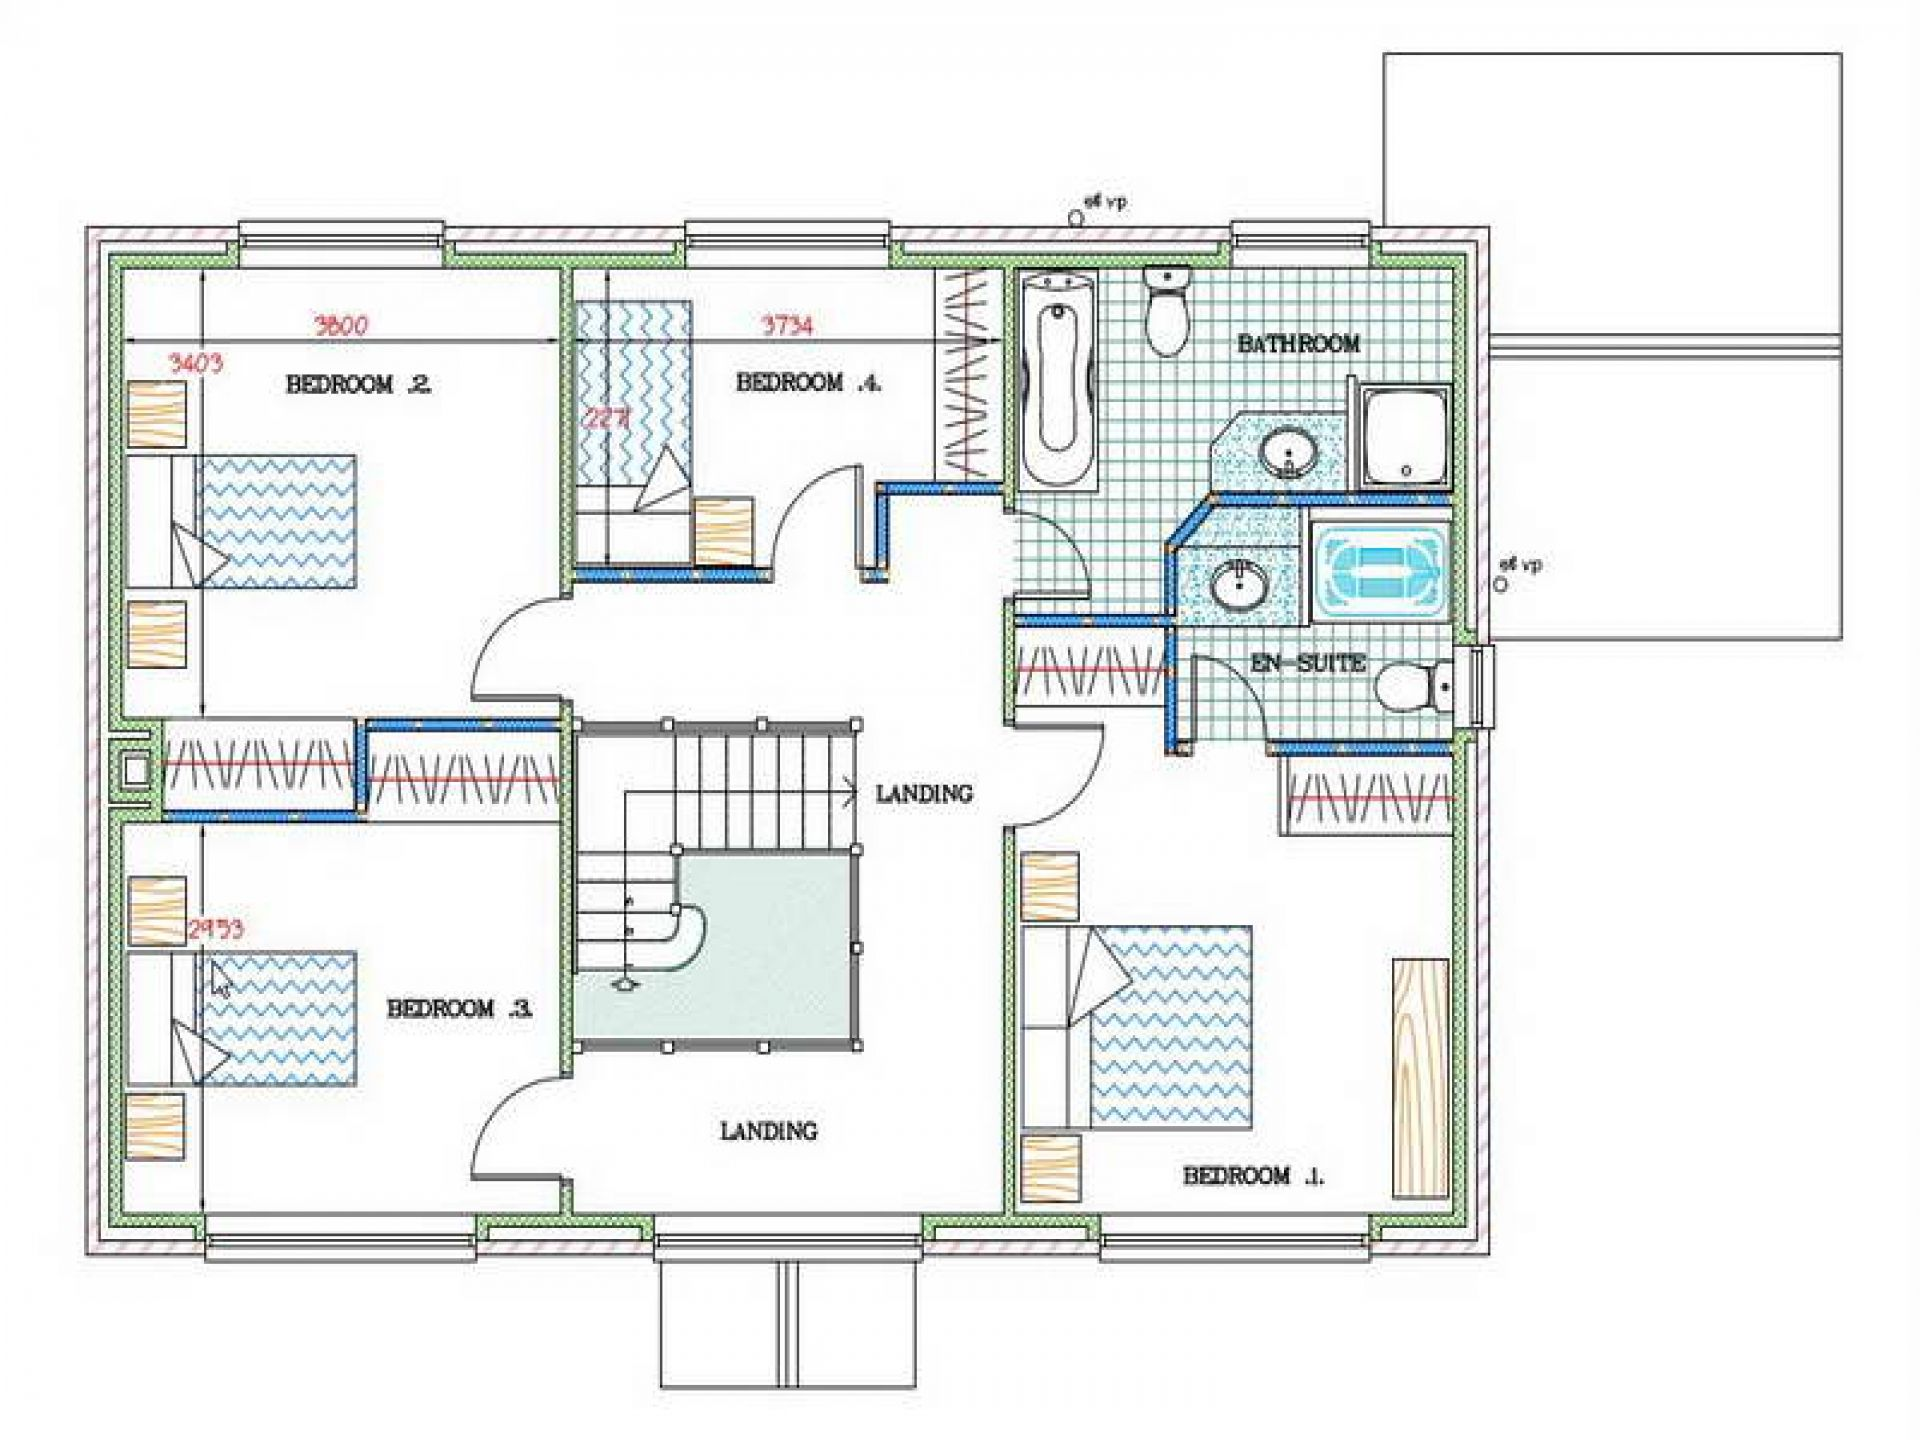 Home Plan Design Online Plans Brilliant Afbeeldingsresultaat Voor Illustrator Floor Plan Furniture . Decorating Design